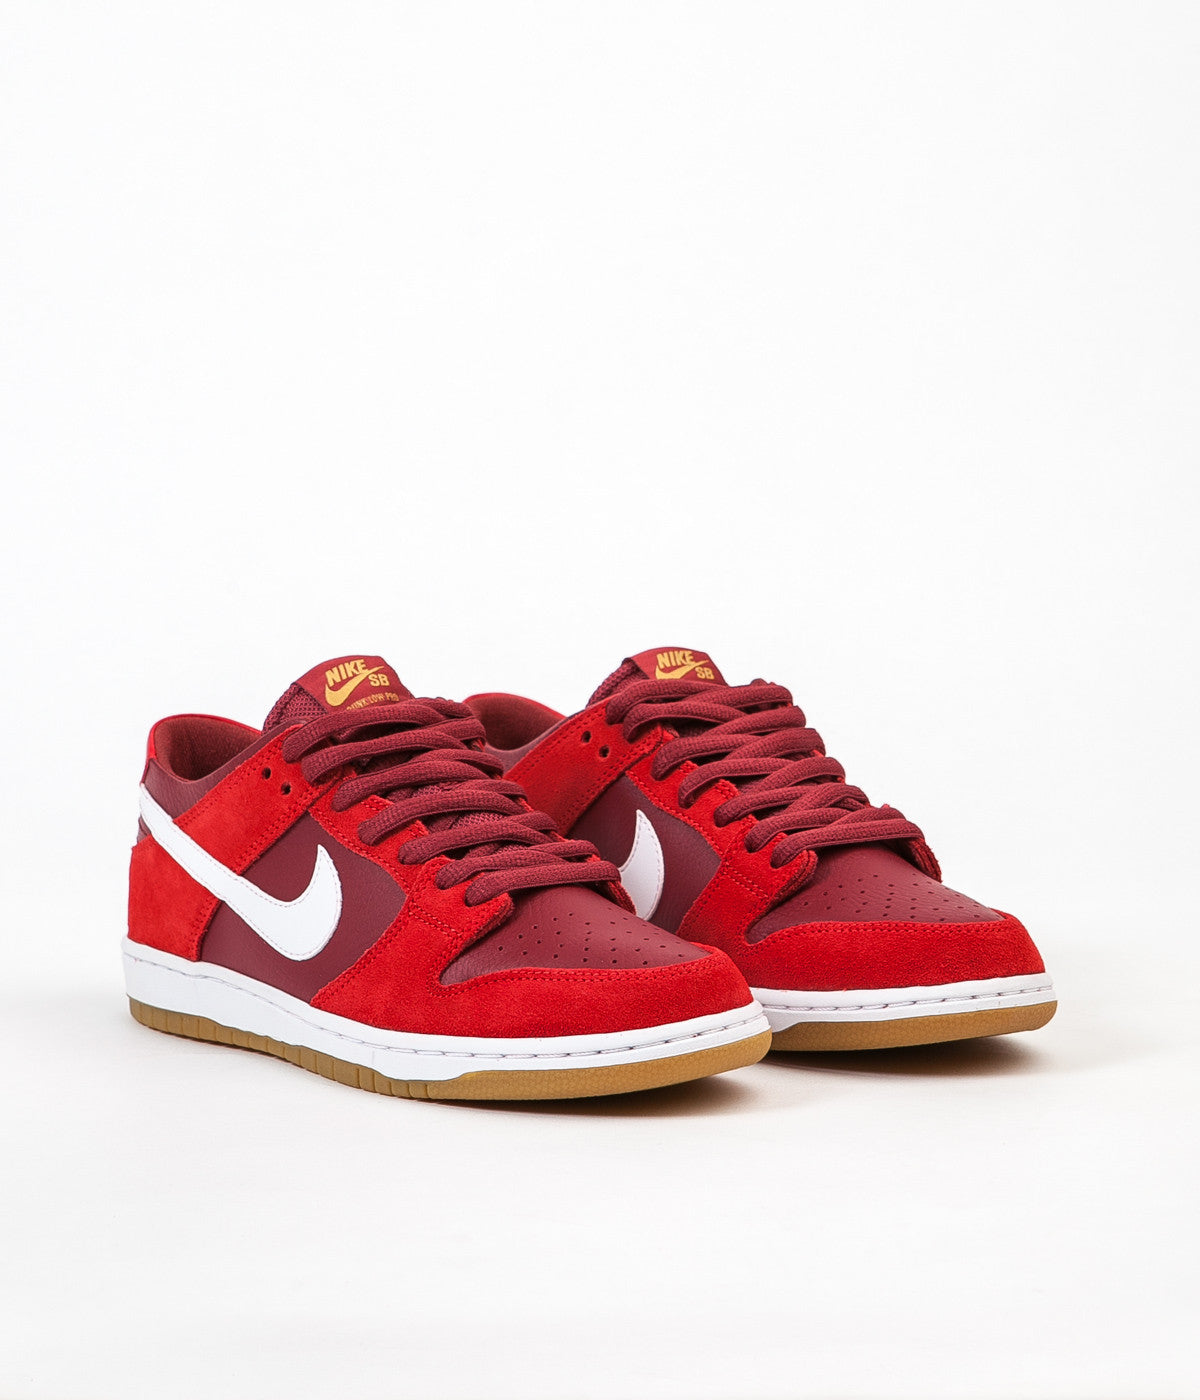 hot sale online 9941b cddd3 Nike SB Dunk Low Pro Shoes - Track Red / White - Cedar - Gum ...